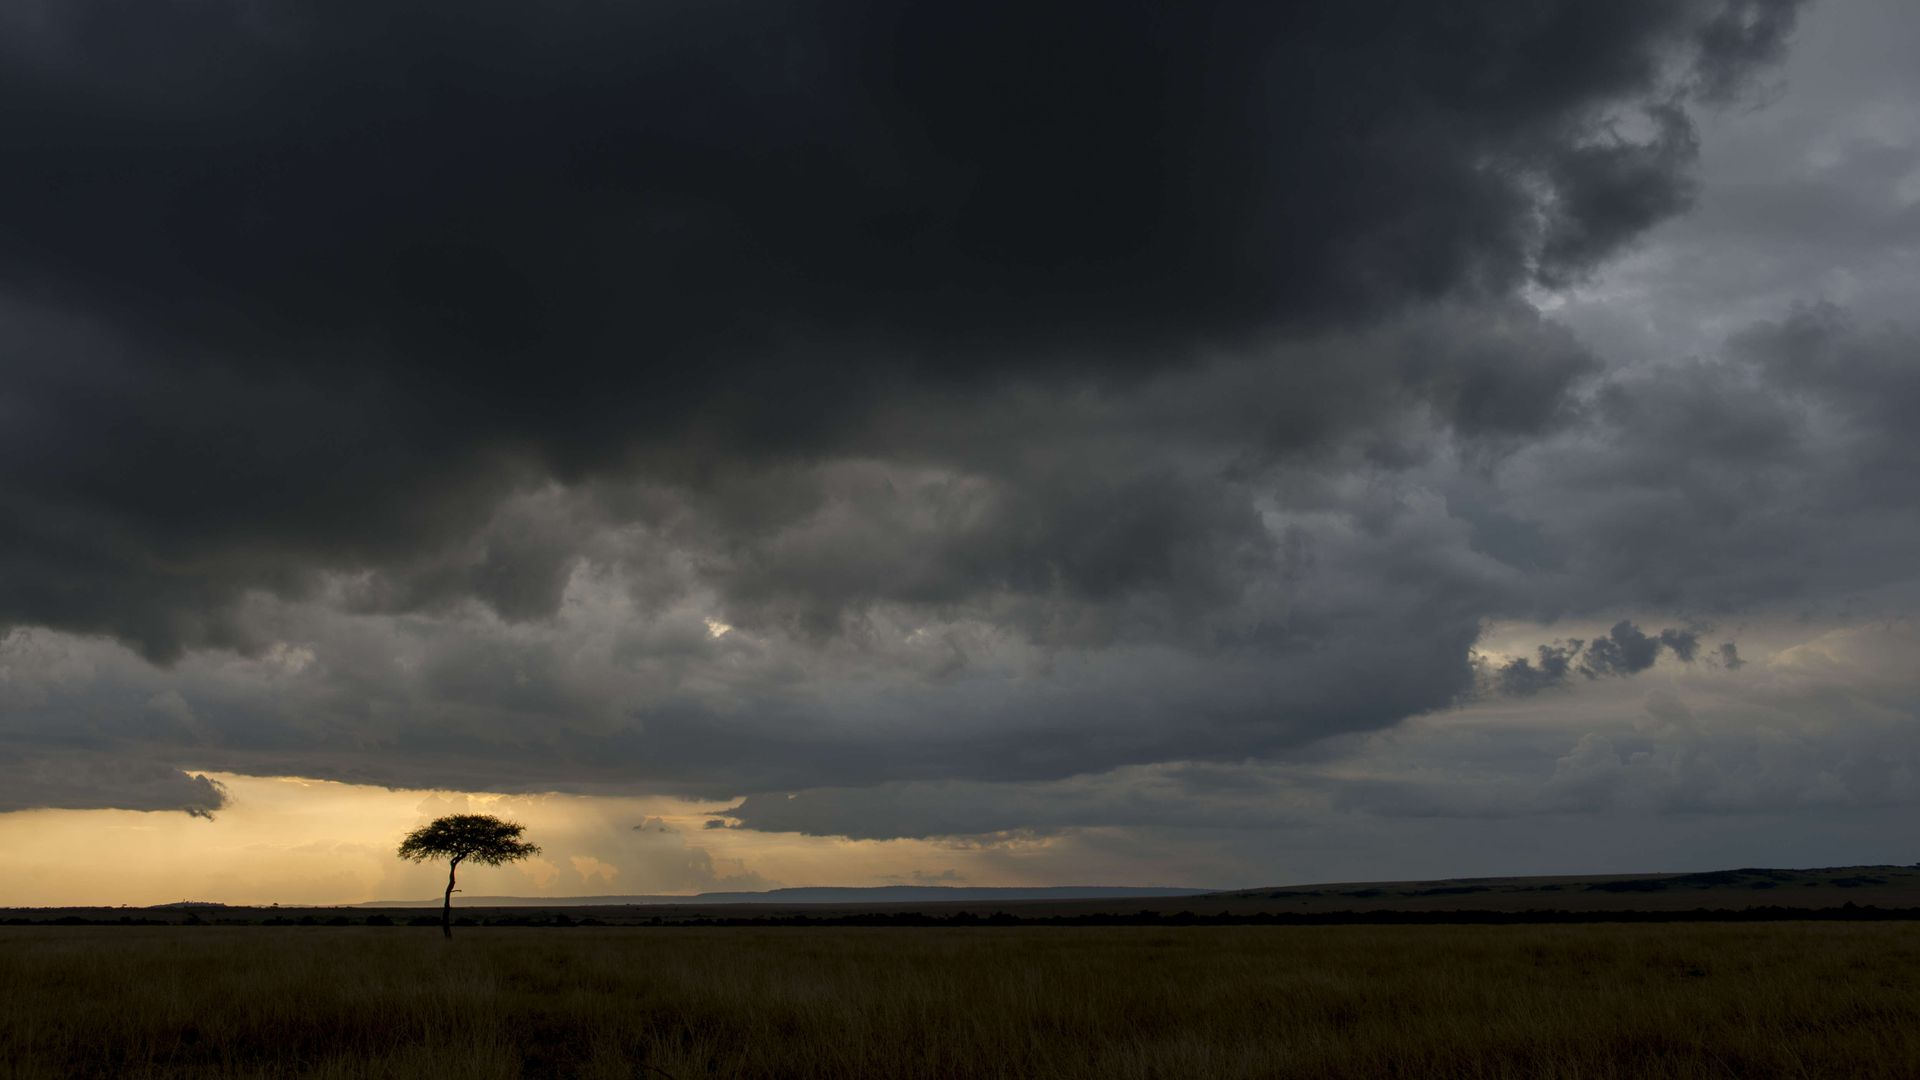 Dark storm clouds over a tree in the grasslands of Kenya